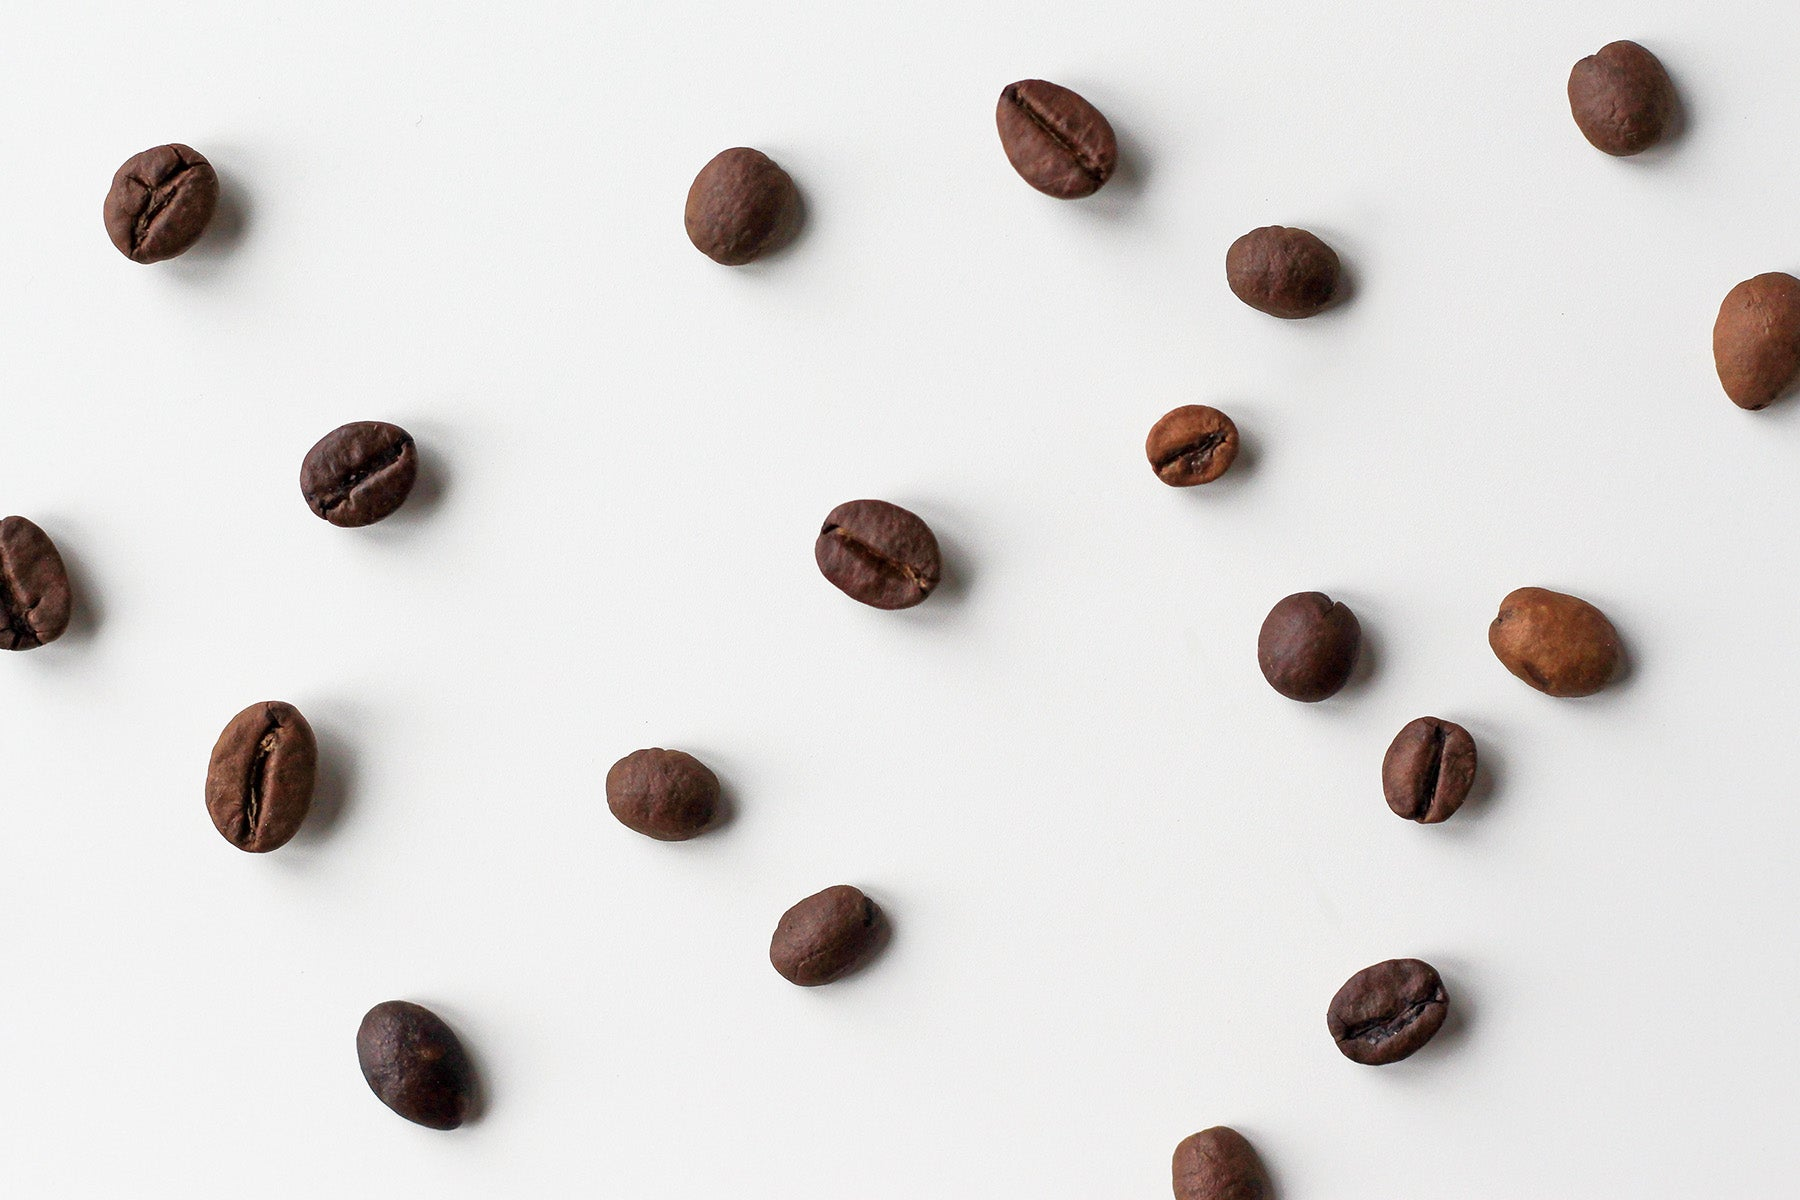 Scattered coffee beans on a plain white surface